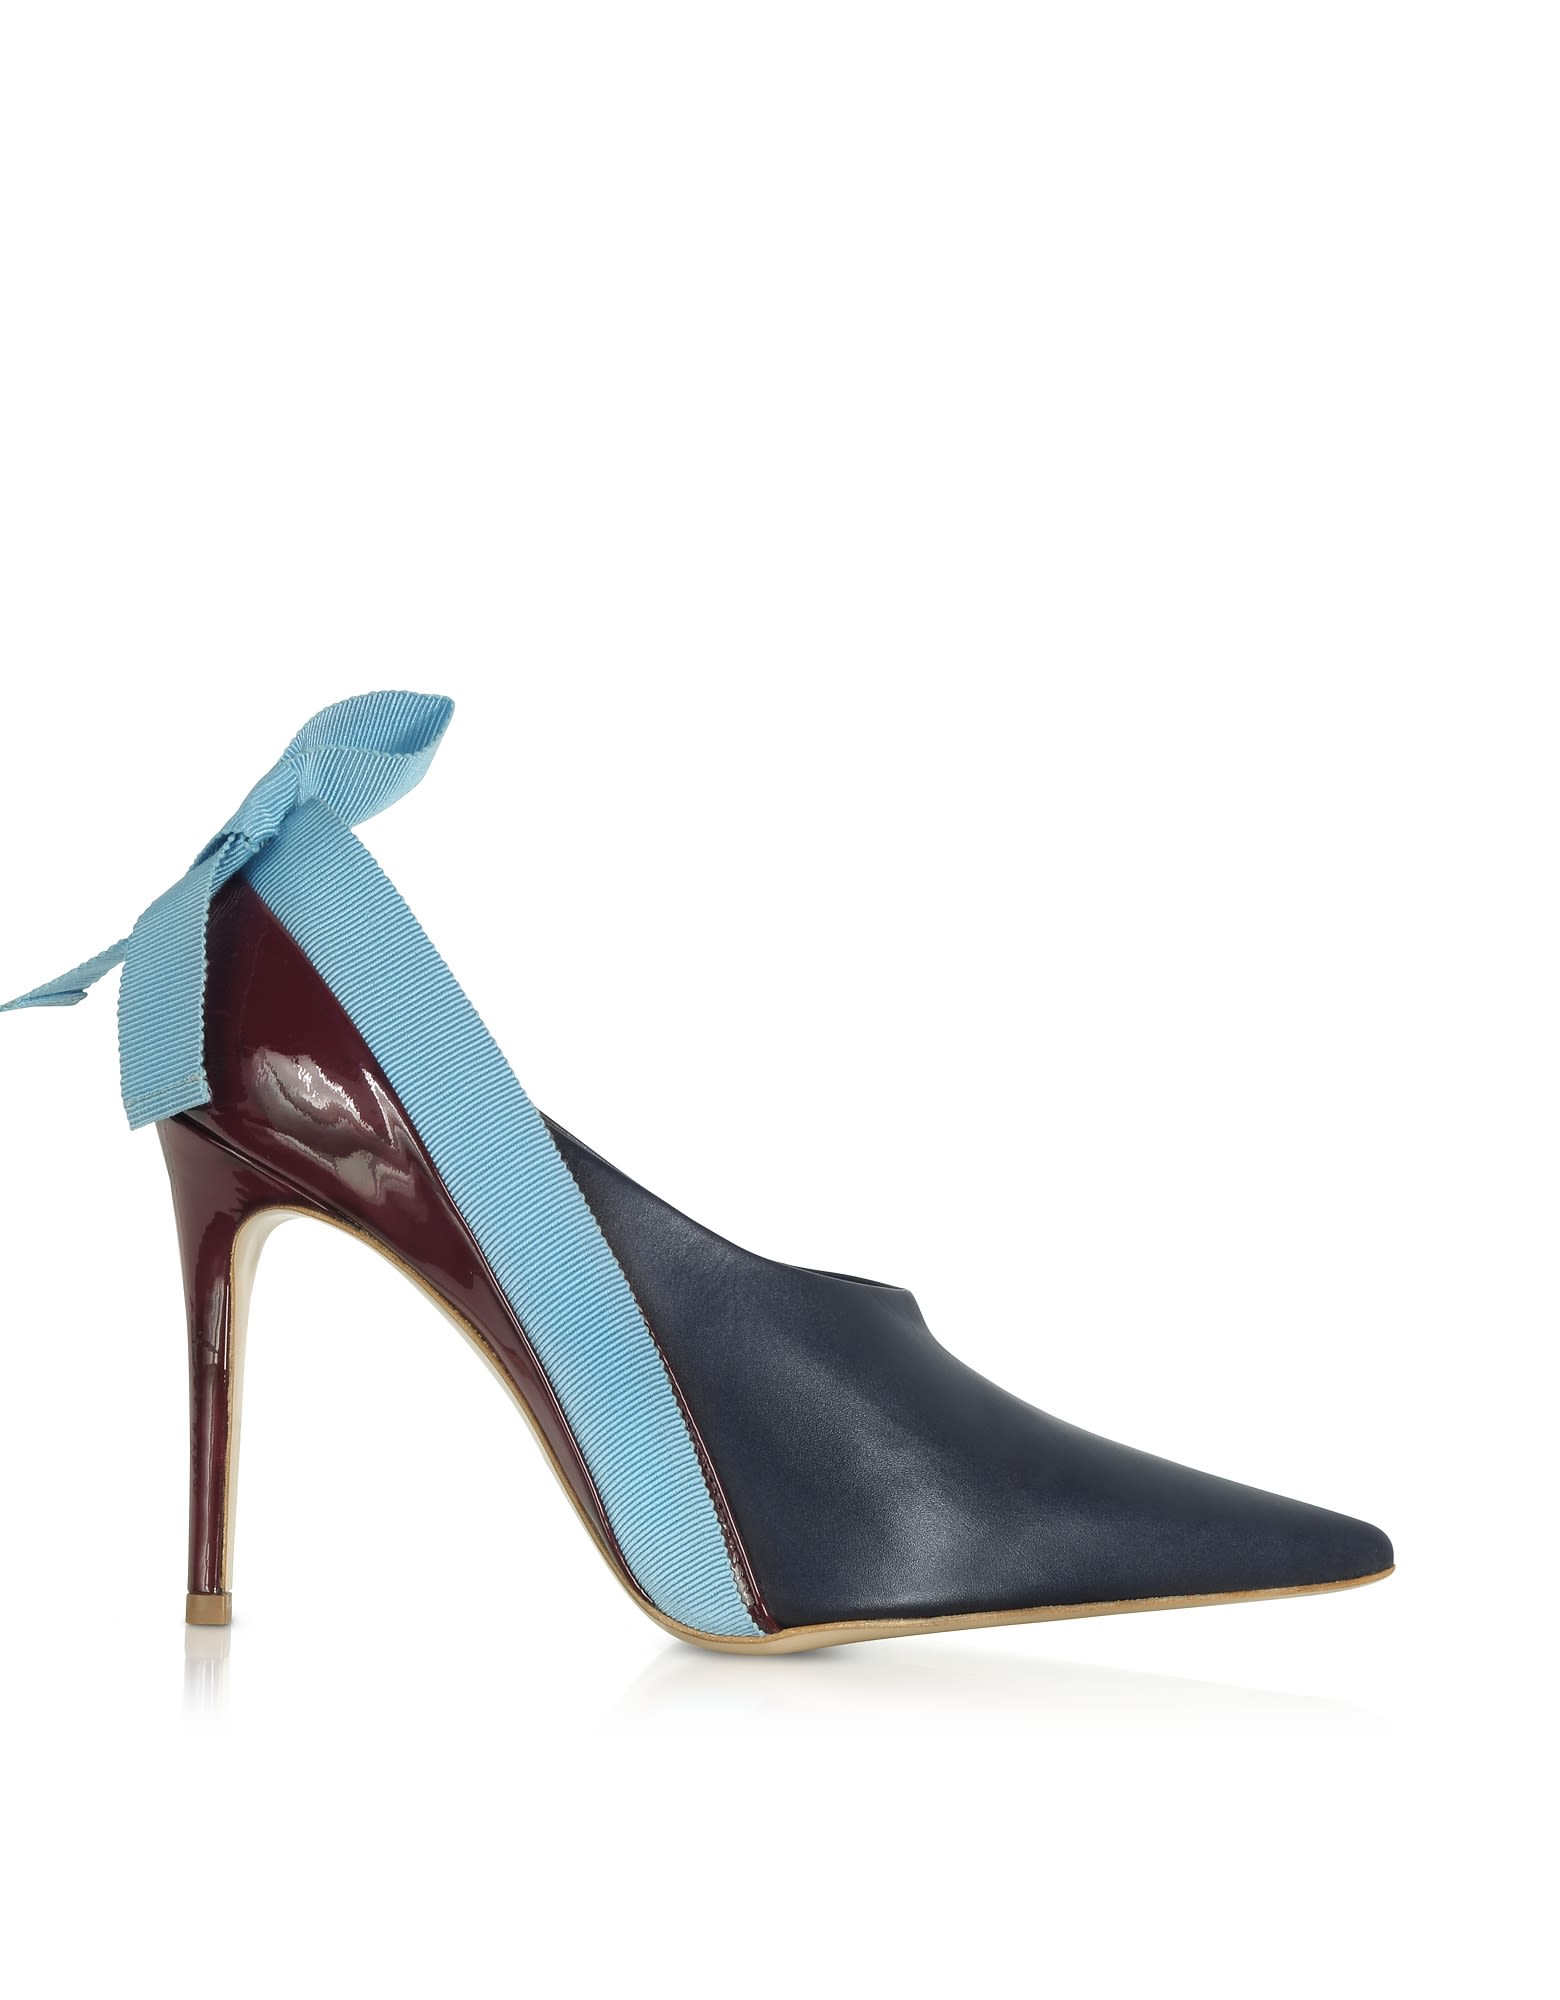 Delpozo MARINE LIGHT BLUE AND BURGUNDY PATENT LEATHER BOOTIES